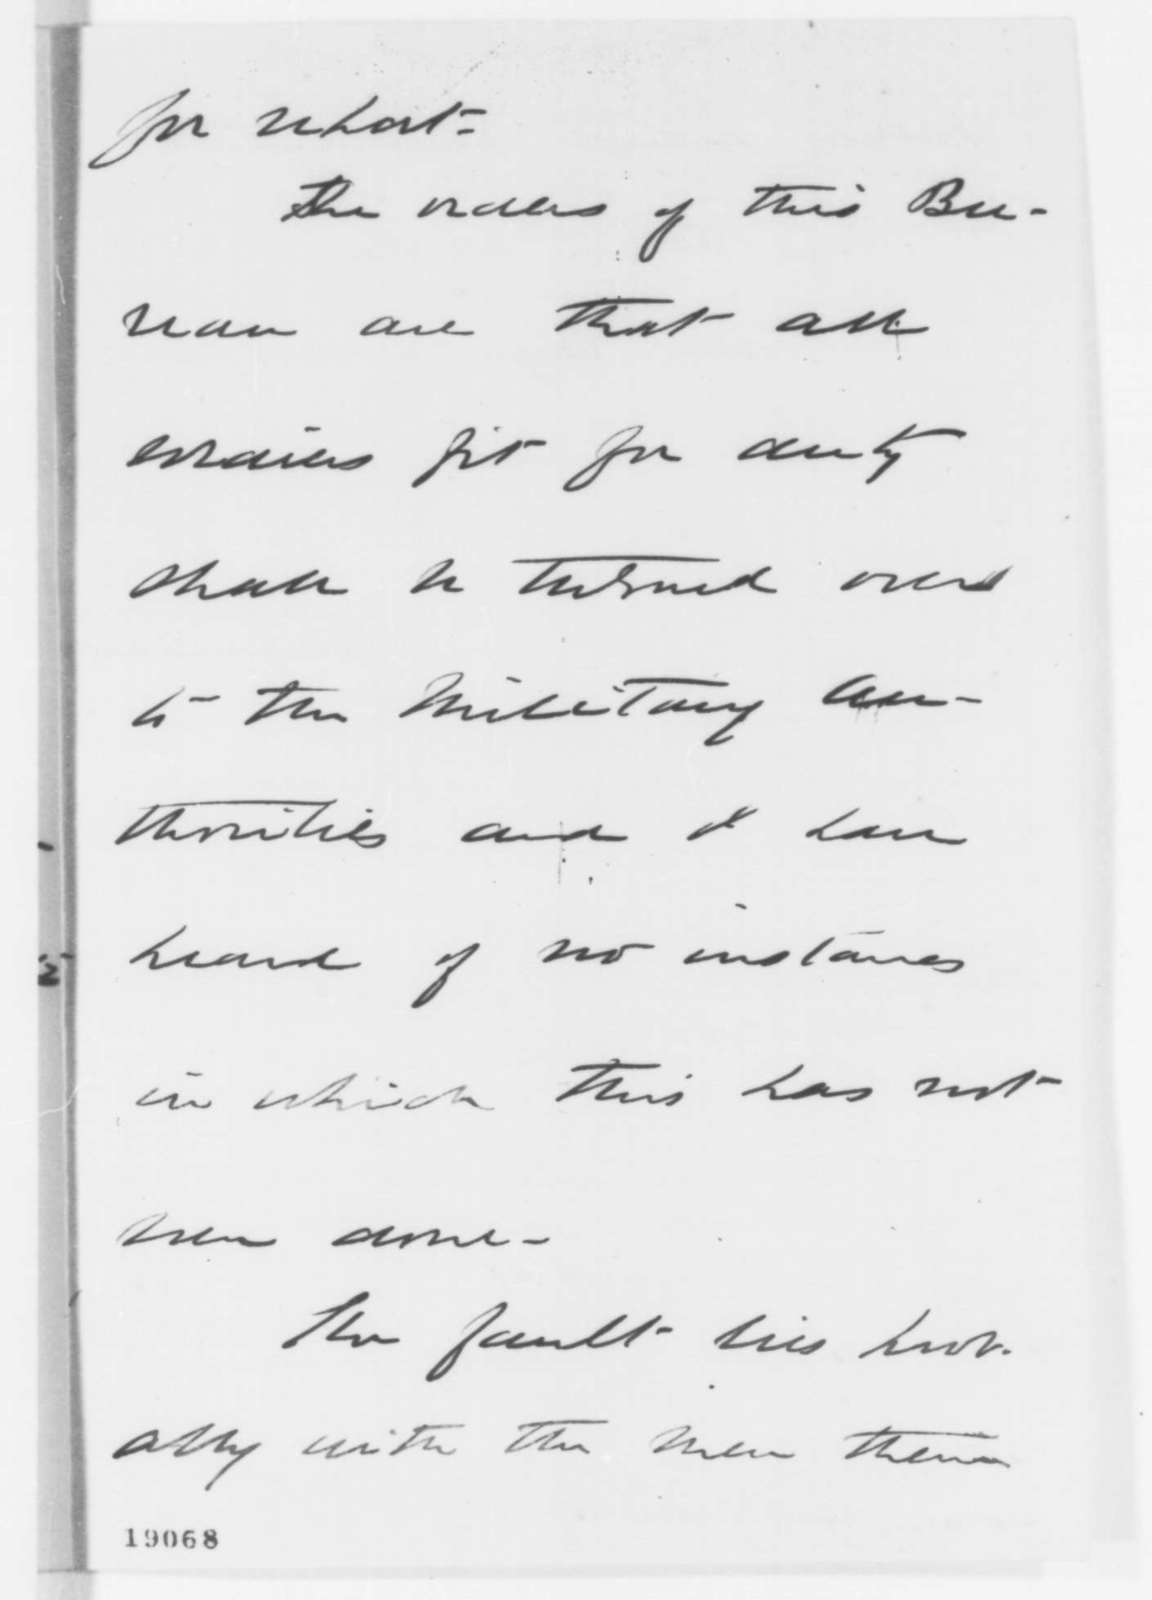 William A. Hammond to Abraham Lincoln, Saturday, October 18, 1862  (Medical situation in Baltimore)